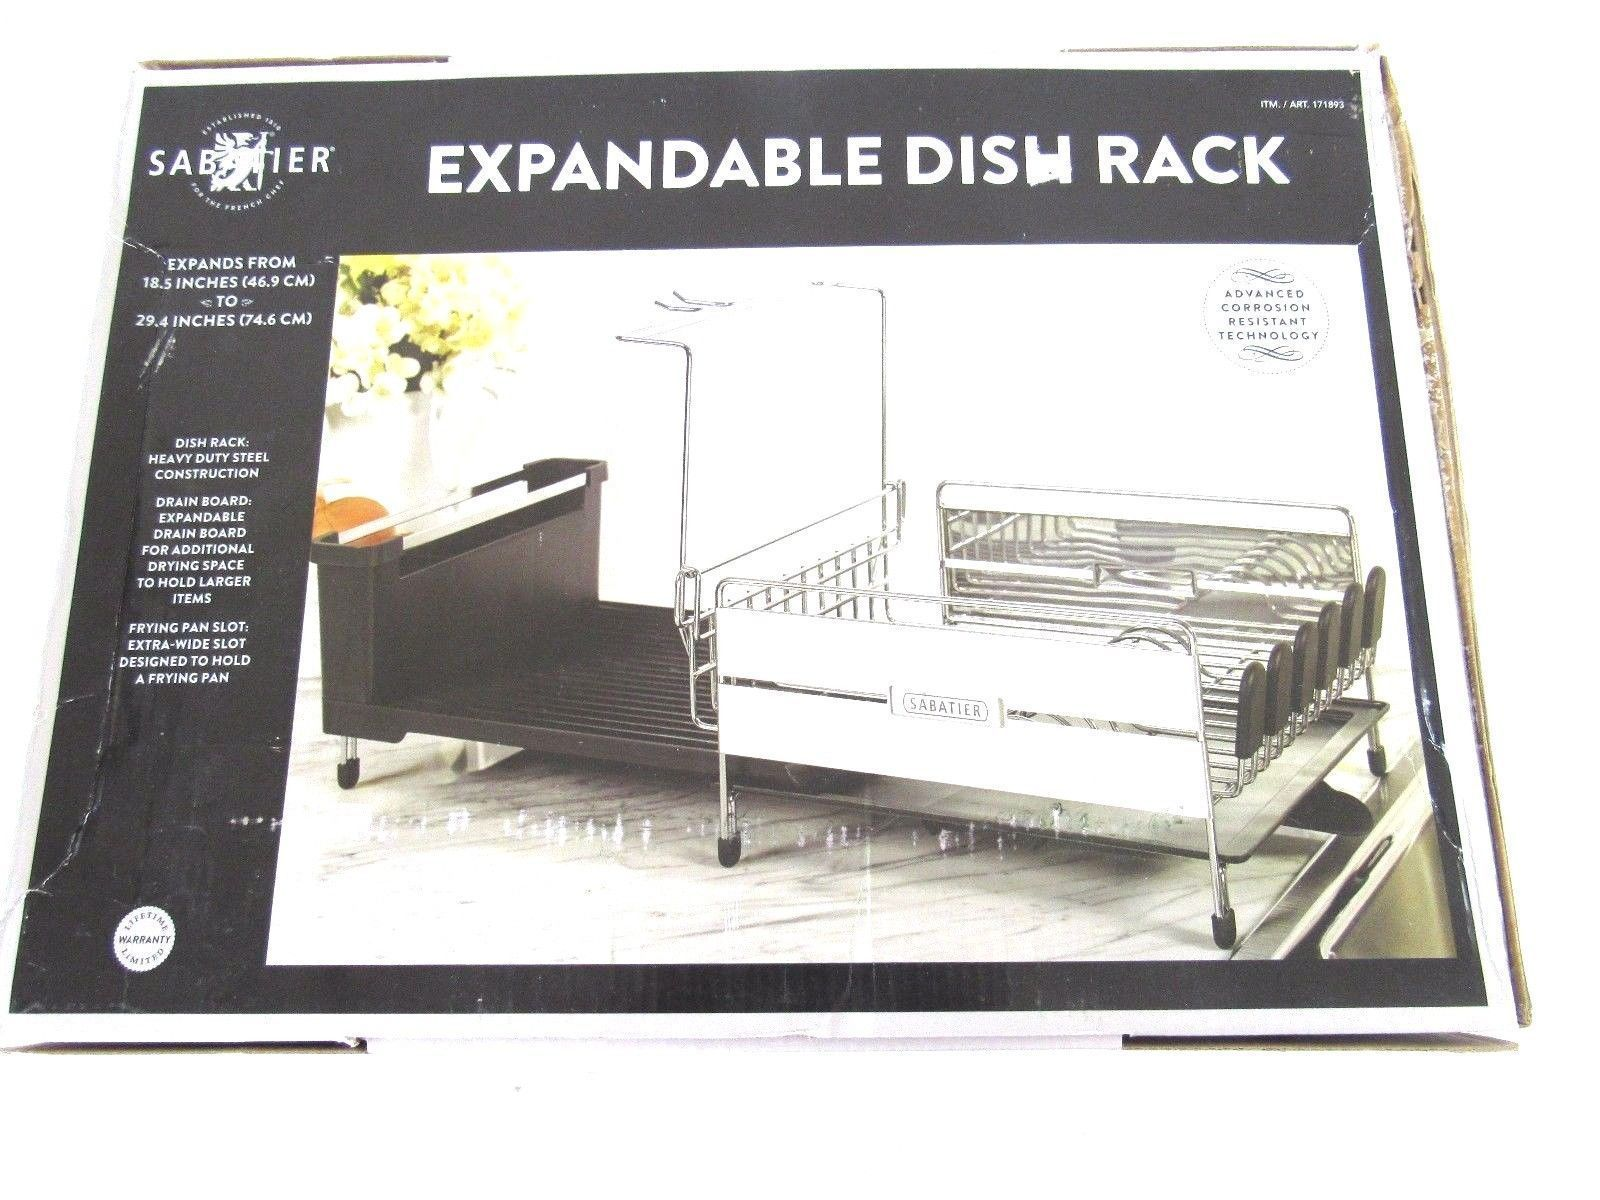 "Sabatier Dish Rack Enchanting Sabatier Expandable Dish Drying Rack Expands From 185""  294 2018"